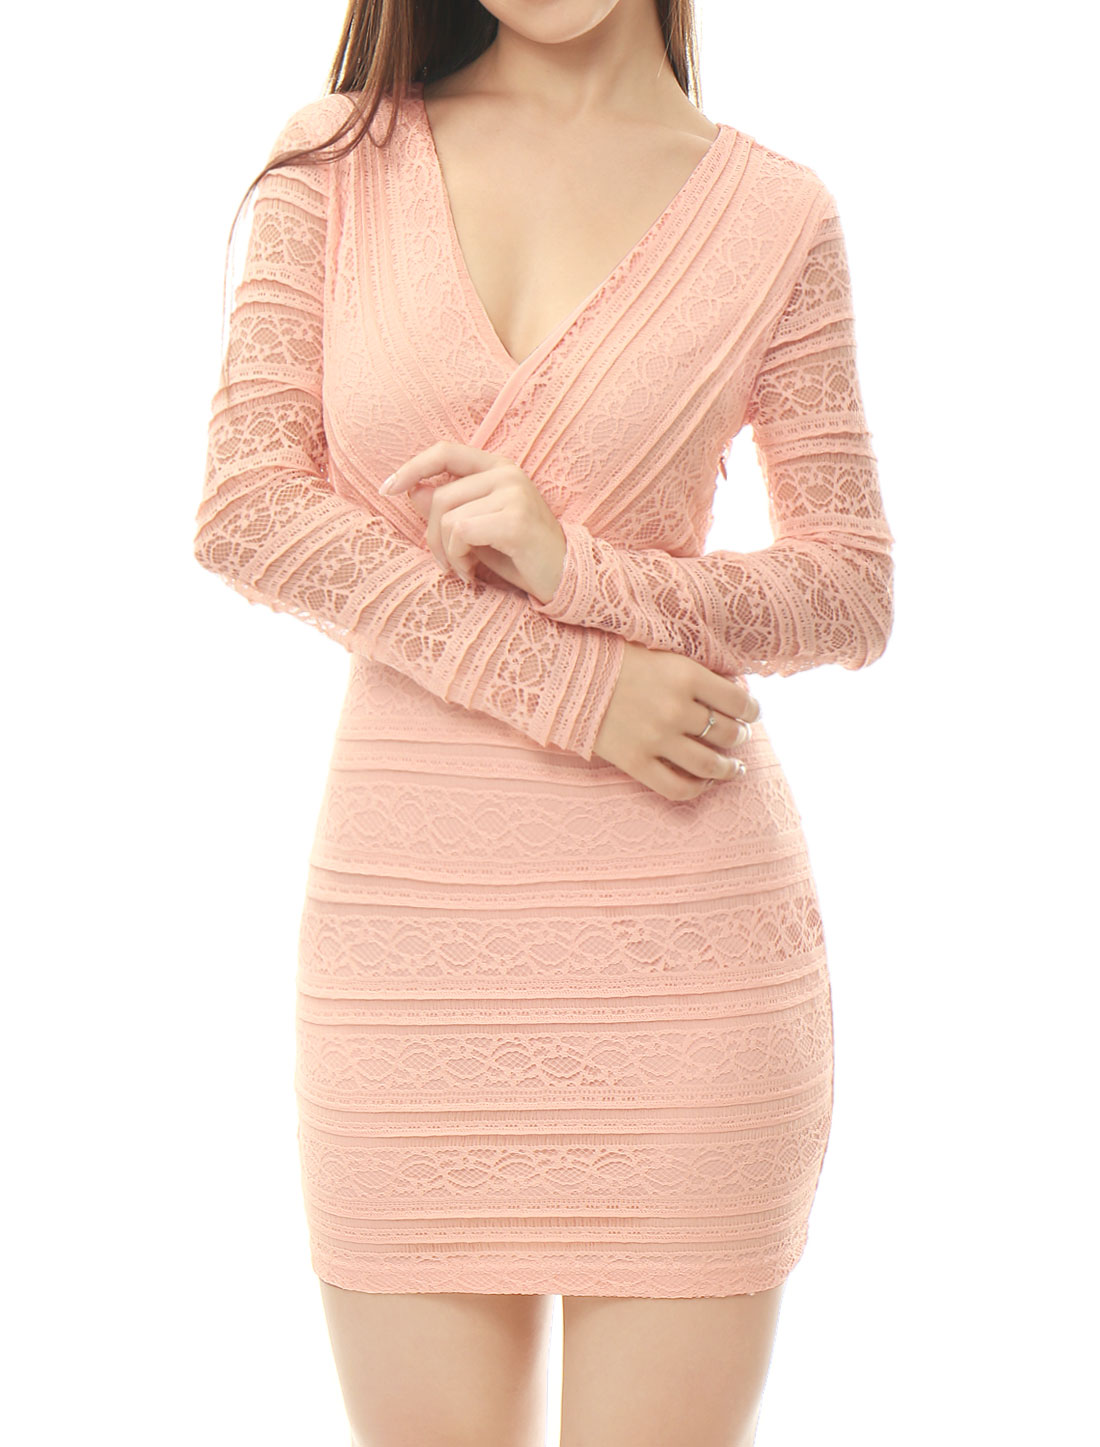 Women Lace Crossover V Neck Long Sleeves Bodycon Dress Pink XS